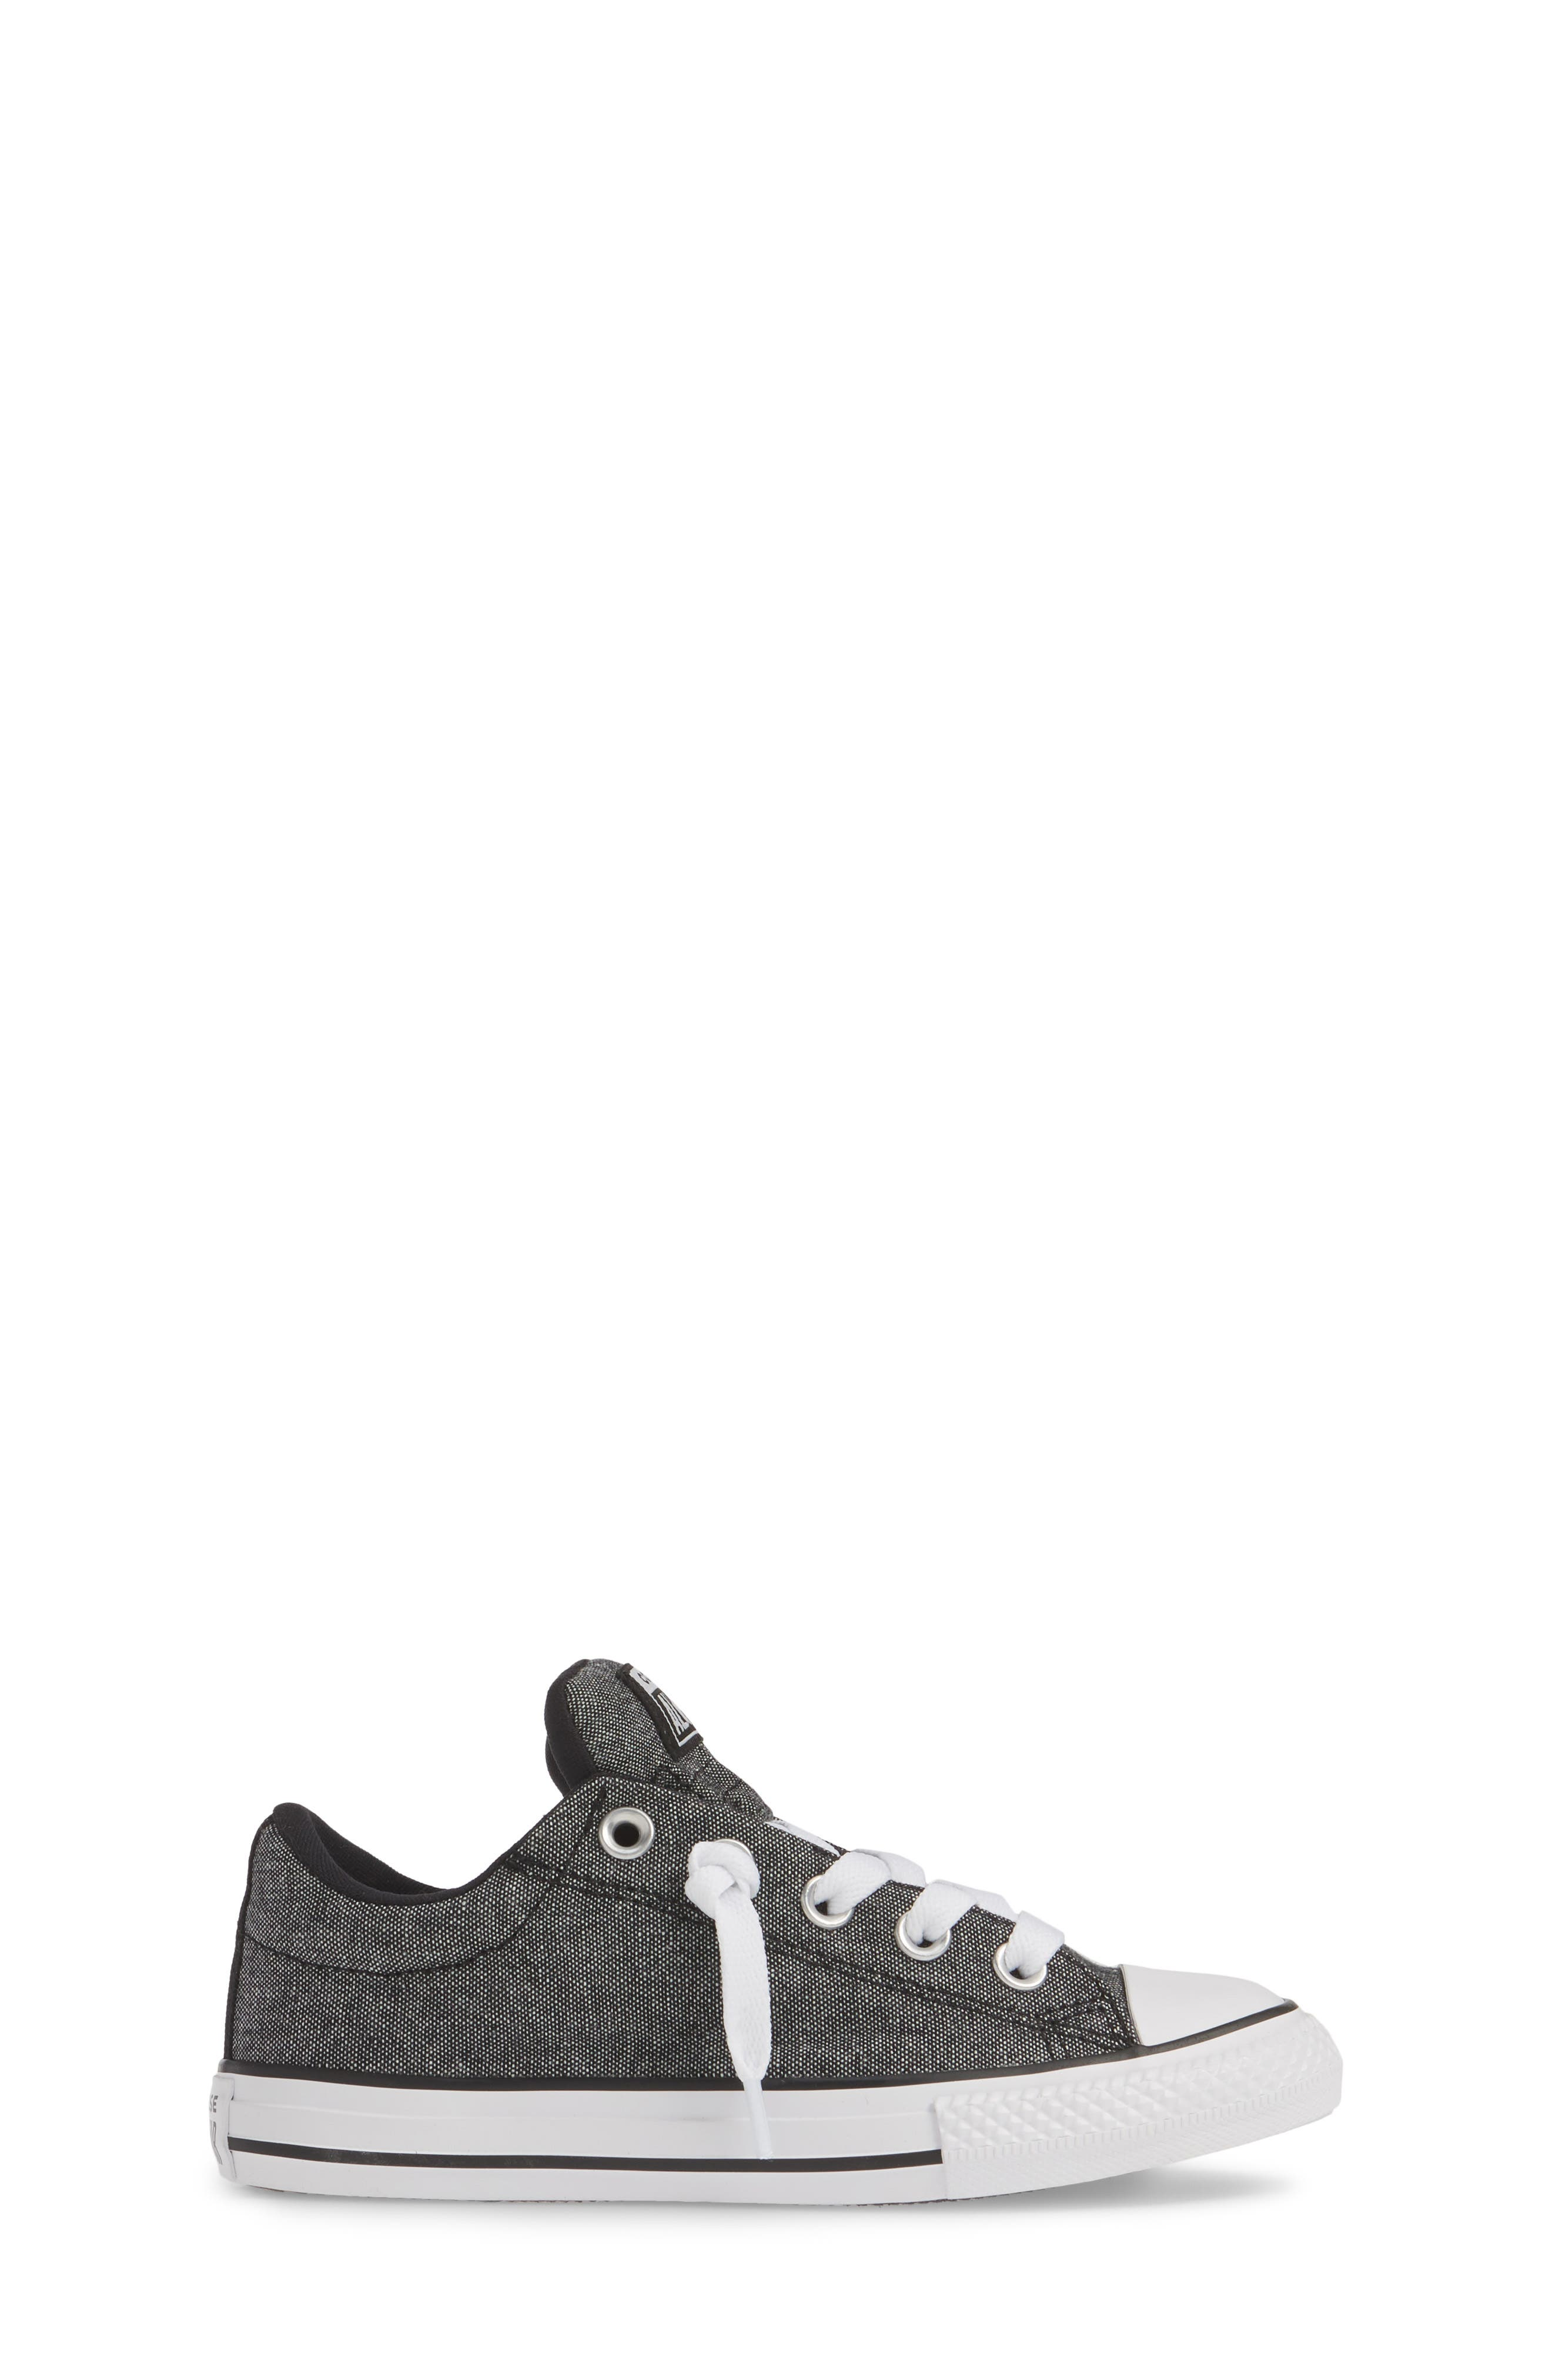 ,                             Chuck Taylor<sup>®</sup> All Star<sup>®</sup> Street Sneaker,                             Alternate thumbnail 3, color,                             BLACK/ BLACK/ WHITE